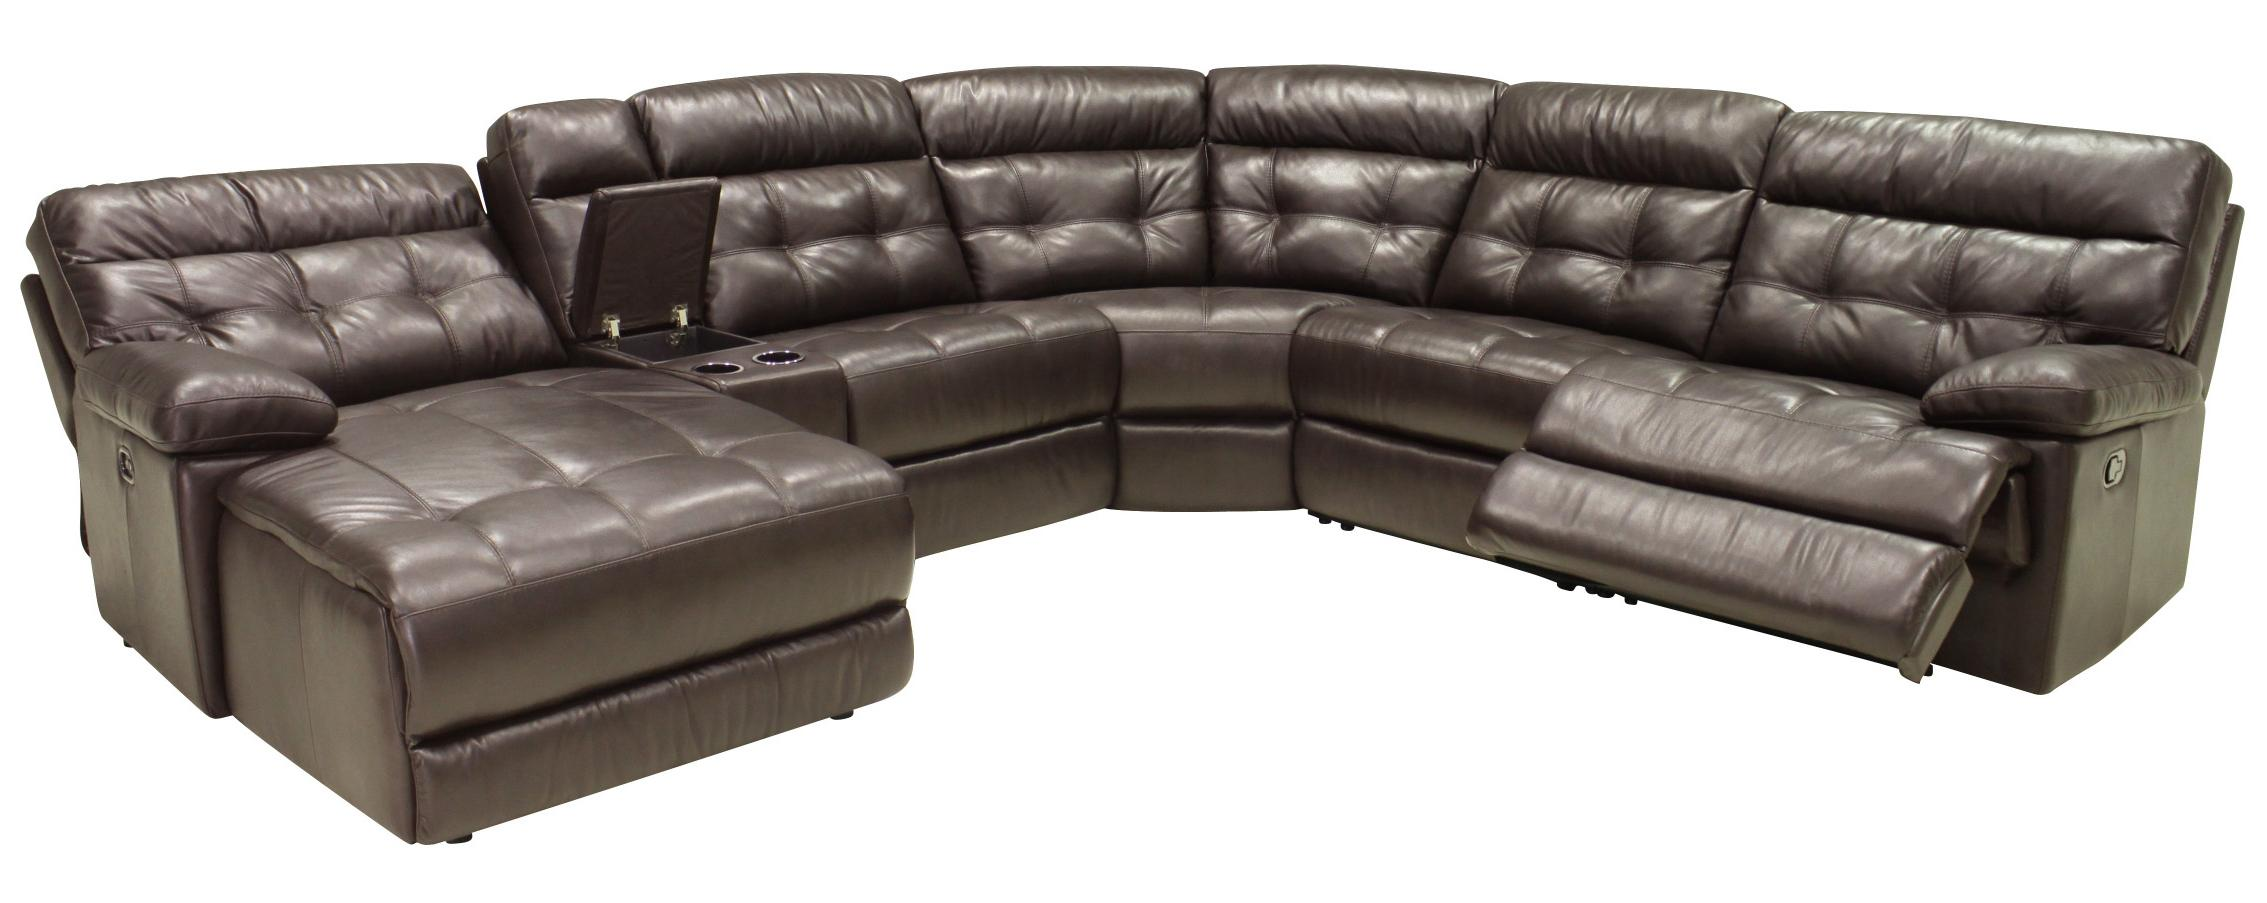 6 Pc Reclining Sectional Sofa w/ LAF Chaise